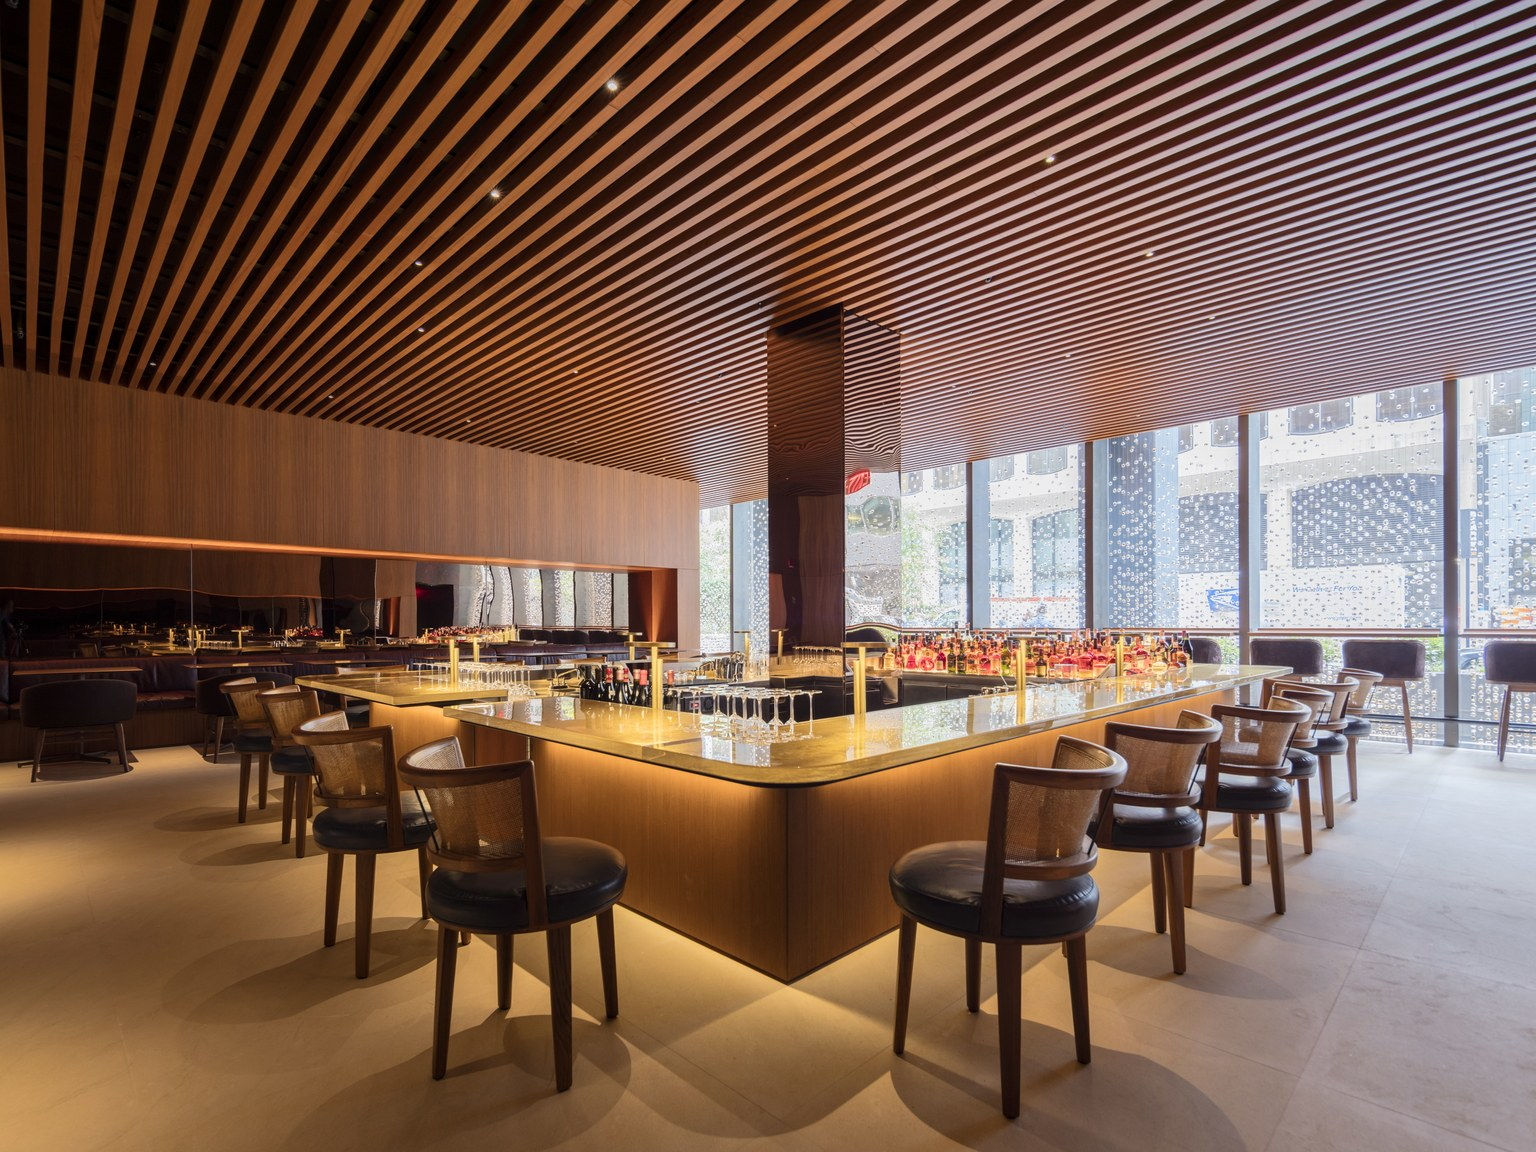 Interior of a warmly textured bar room with a wood ceiling, at the new Four Seasons